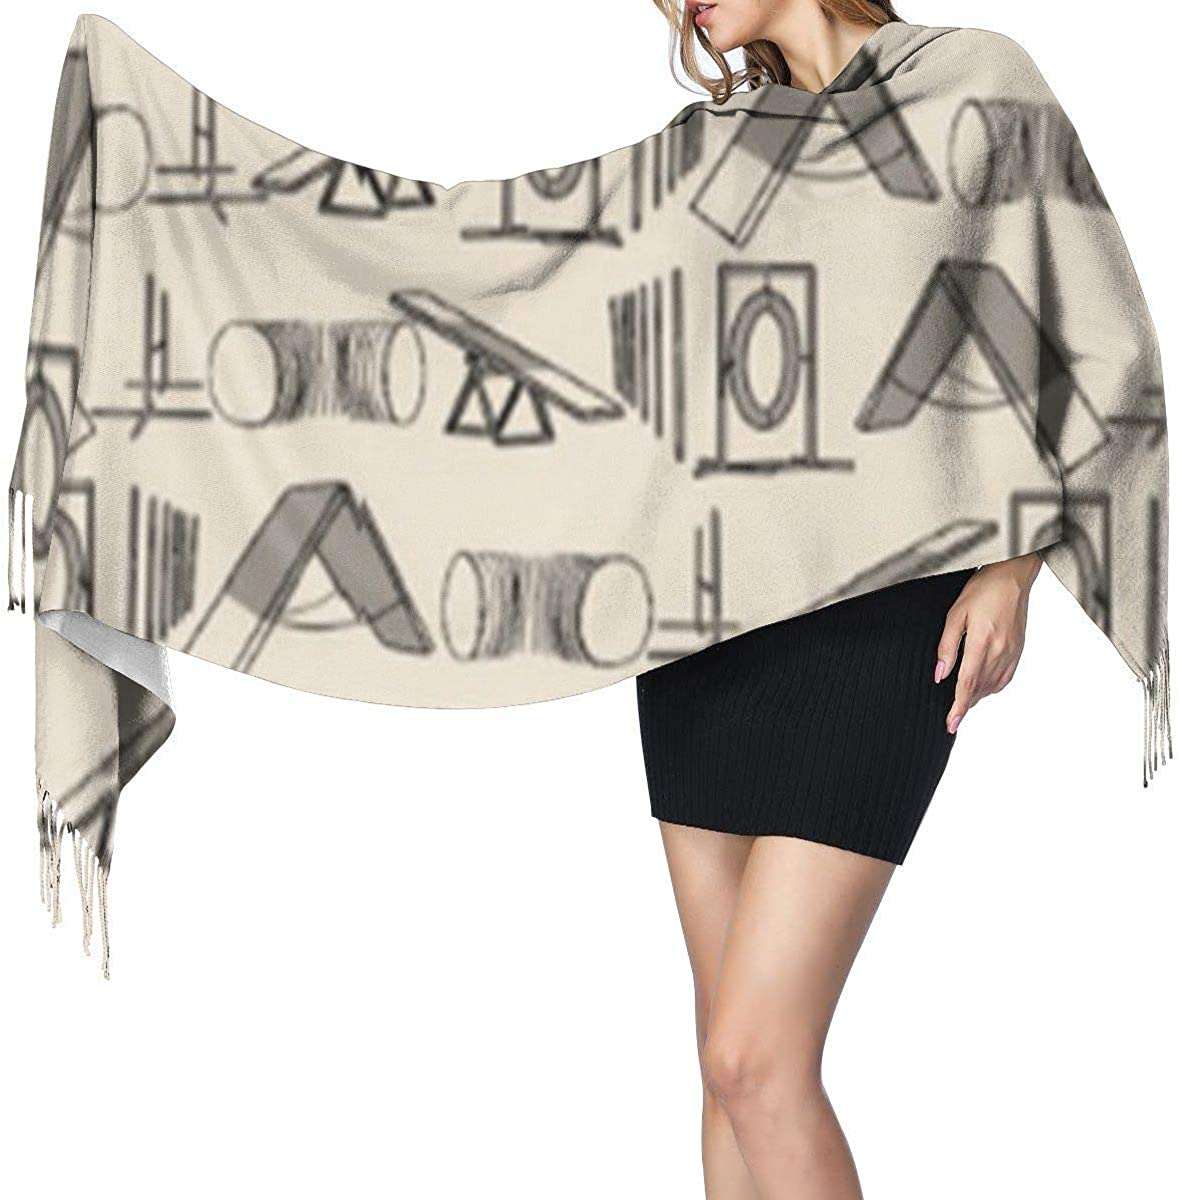 XCNGG Bufanda con flecos de cachemira de imitación chal bufanda larga de moda Cashmere Feel Shawl Wraps Simple Dog Agility Equipment Fashion Large Scarf For Women Winter Warm Soft Scarves Blanket